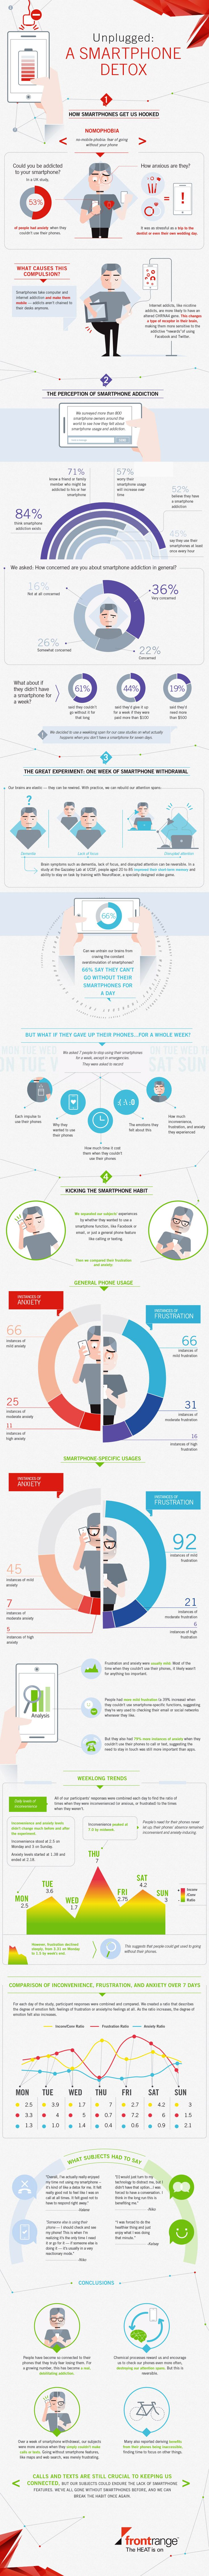 [INFOGRAPHIC] The Guide to Surviving Without Your Smartphone—Unplugging; Detoxing; Details.